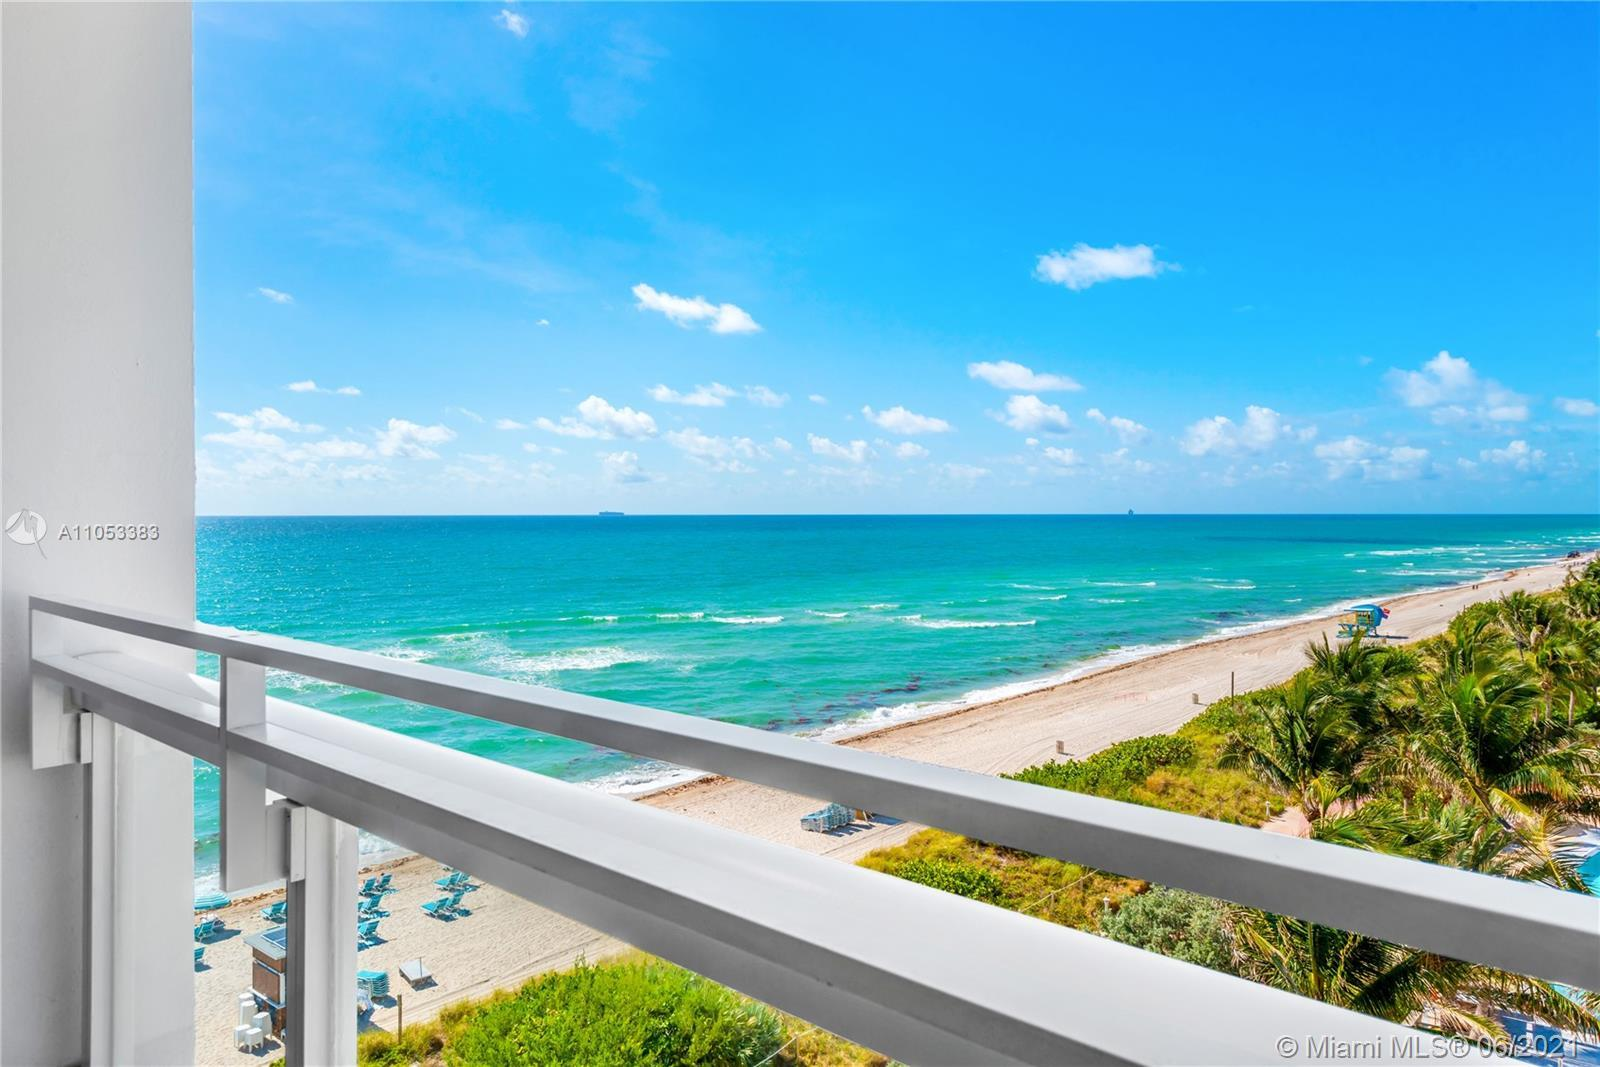 Resort-living 1 bed condo in the famed, beachfront Carillon Miami Wellness Resort with balcony to en